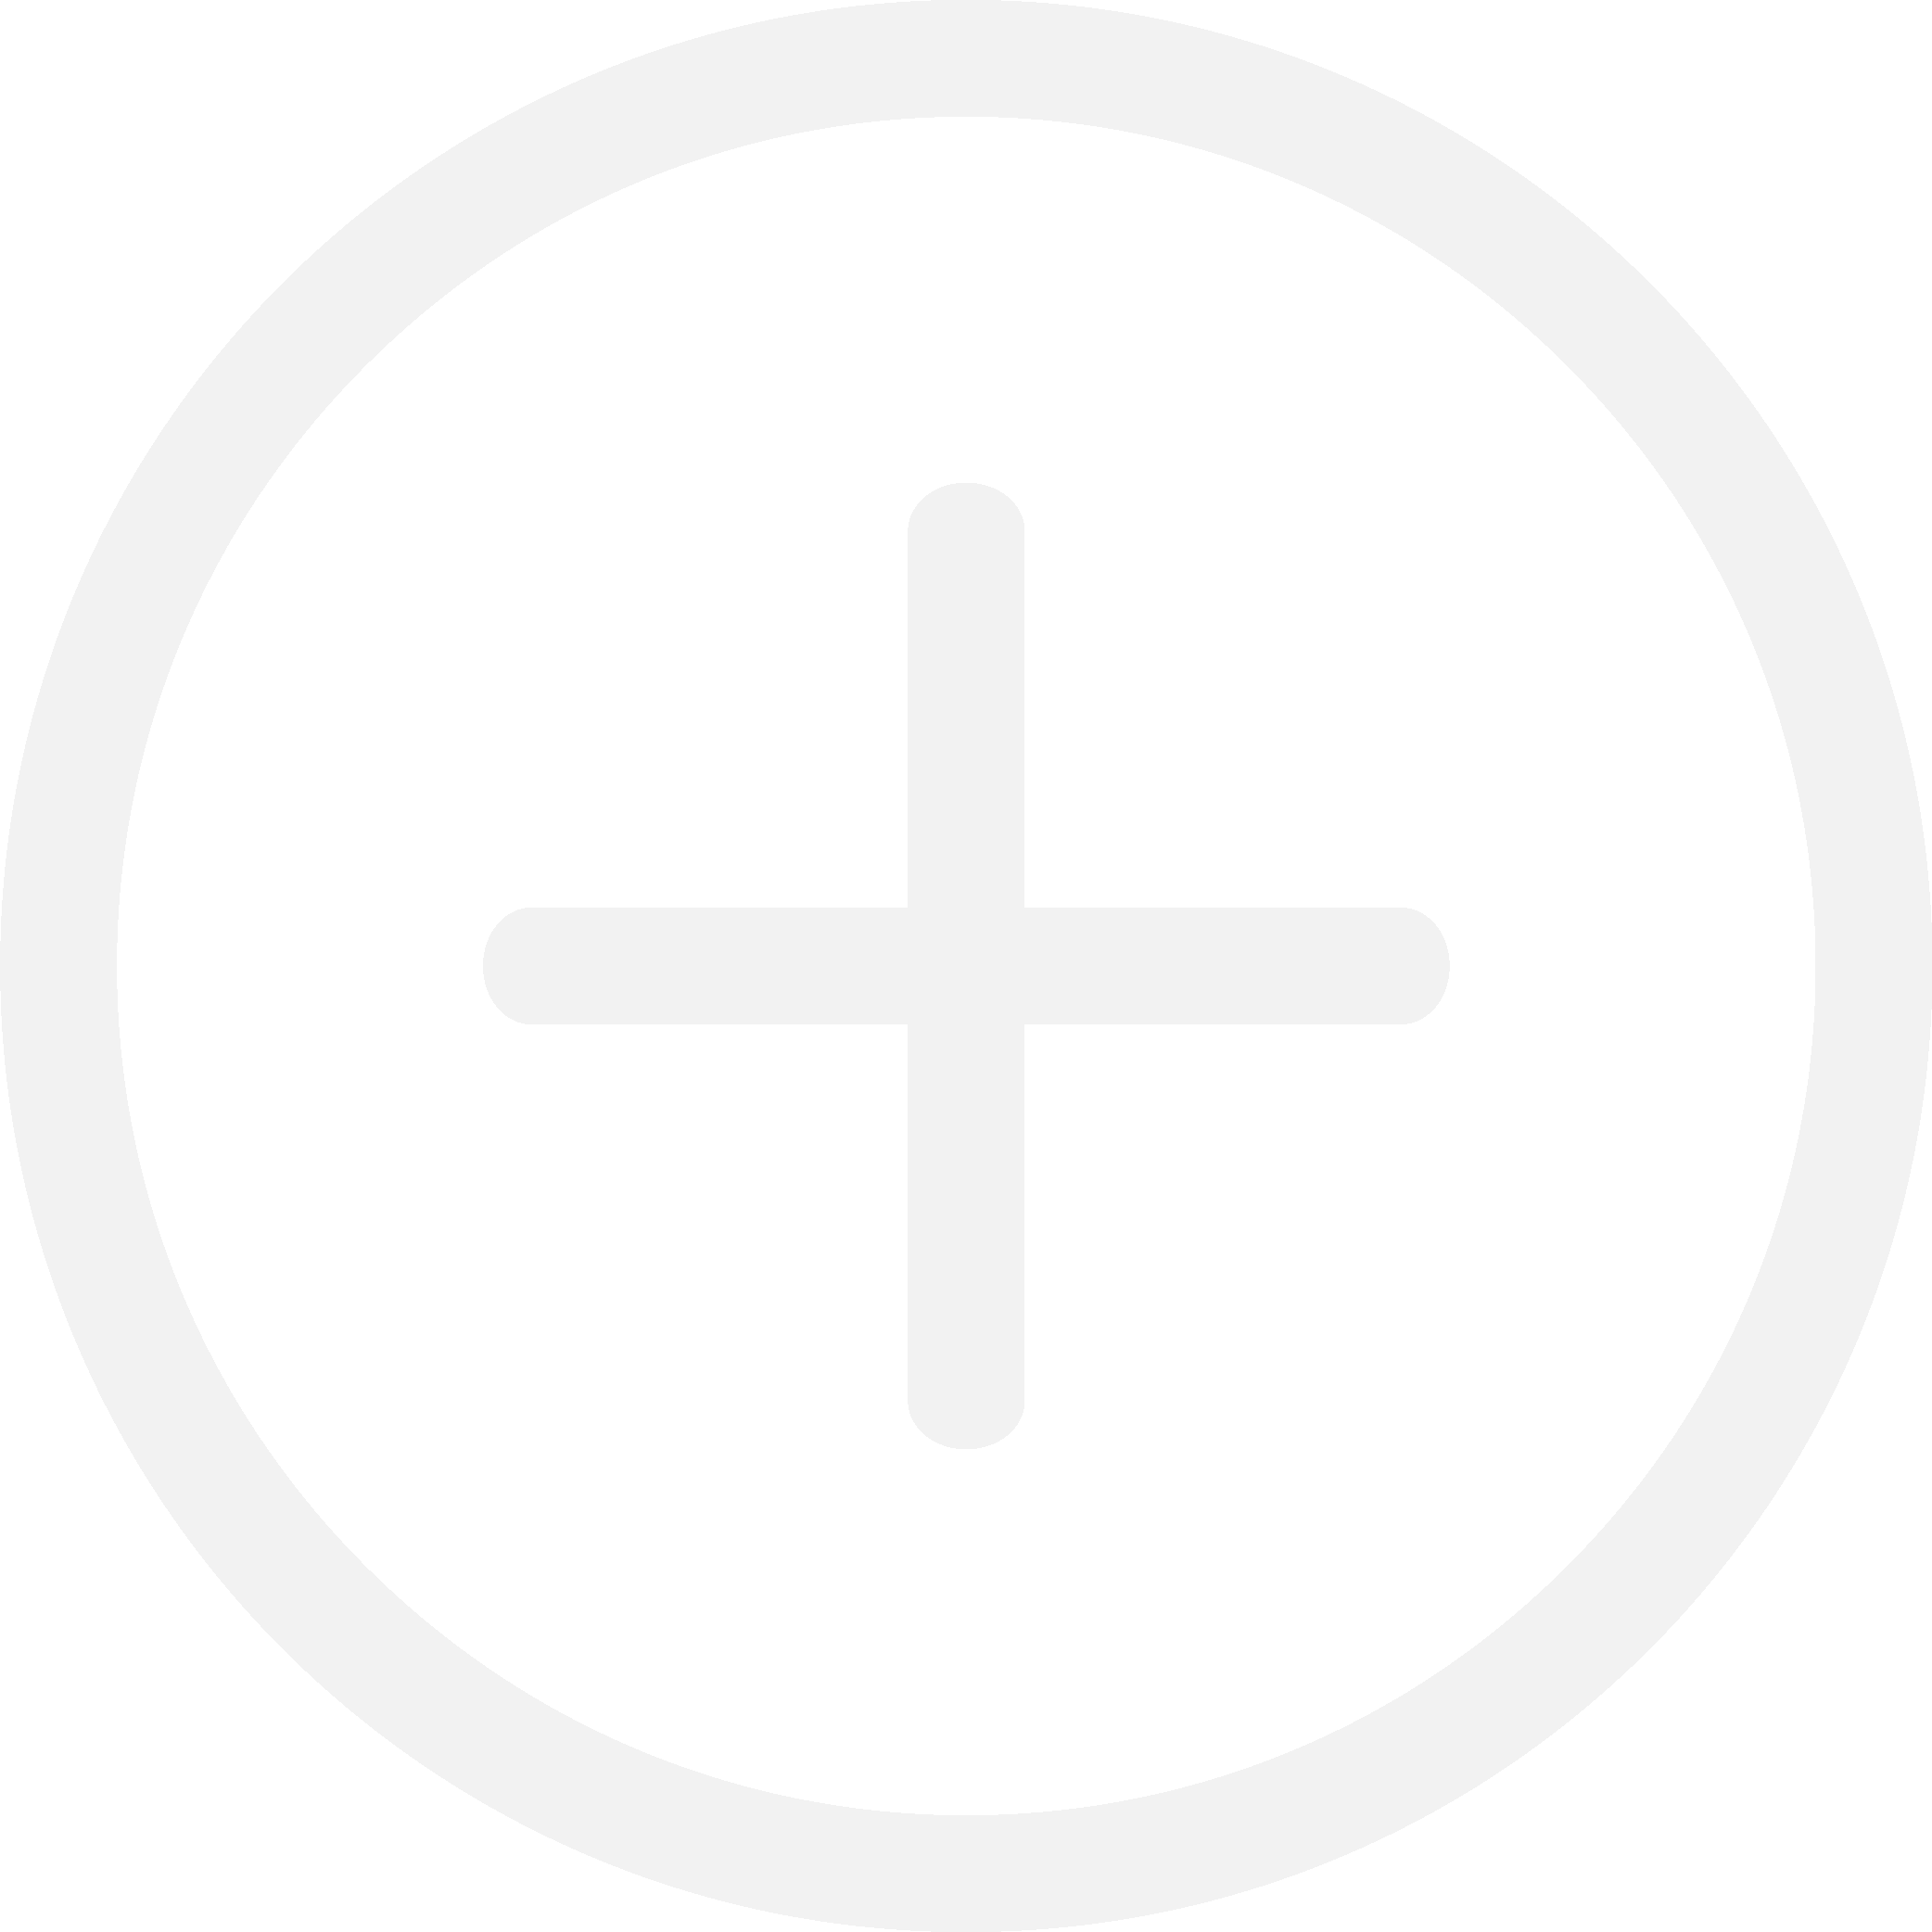 a plus sign surrounded by a circle